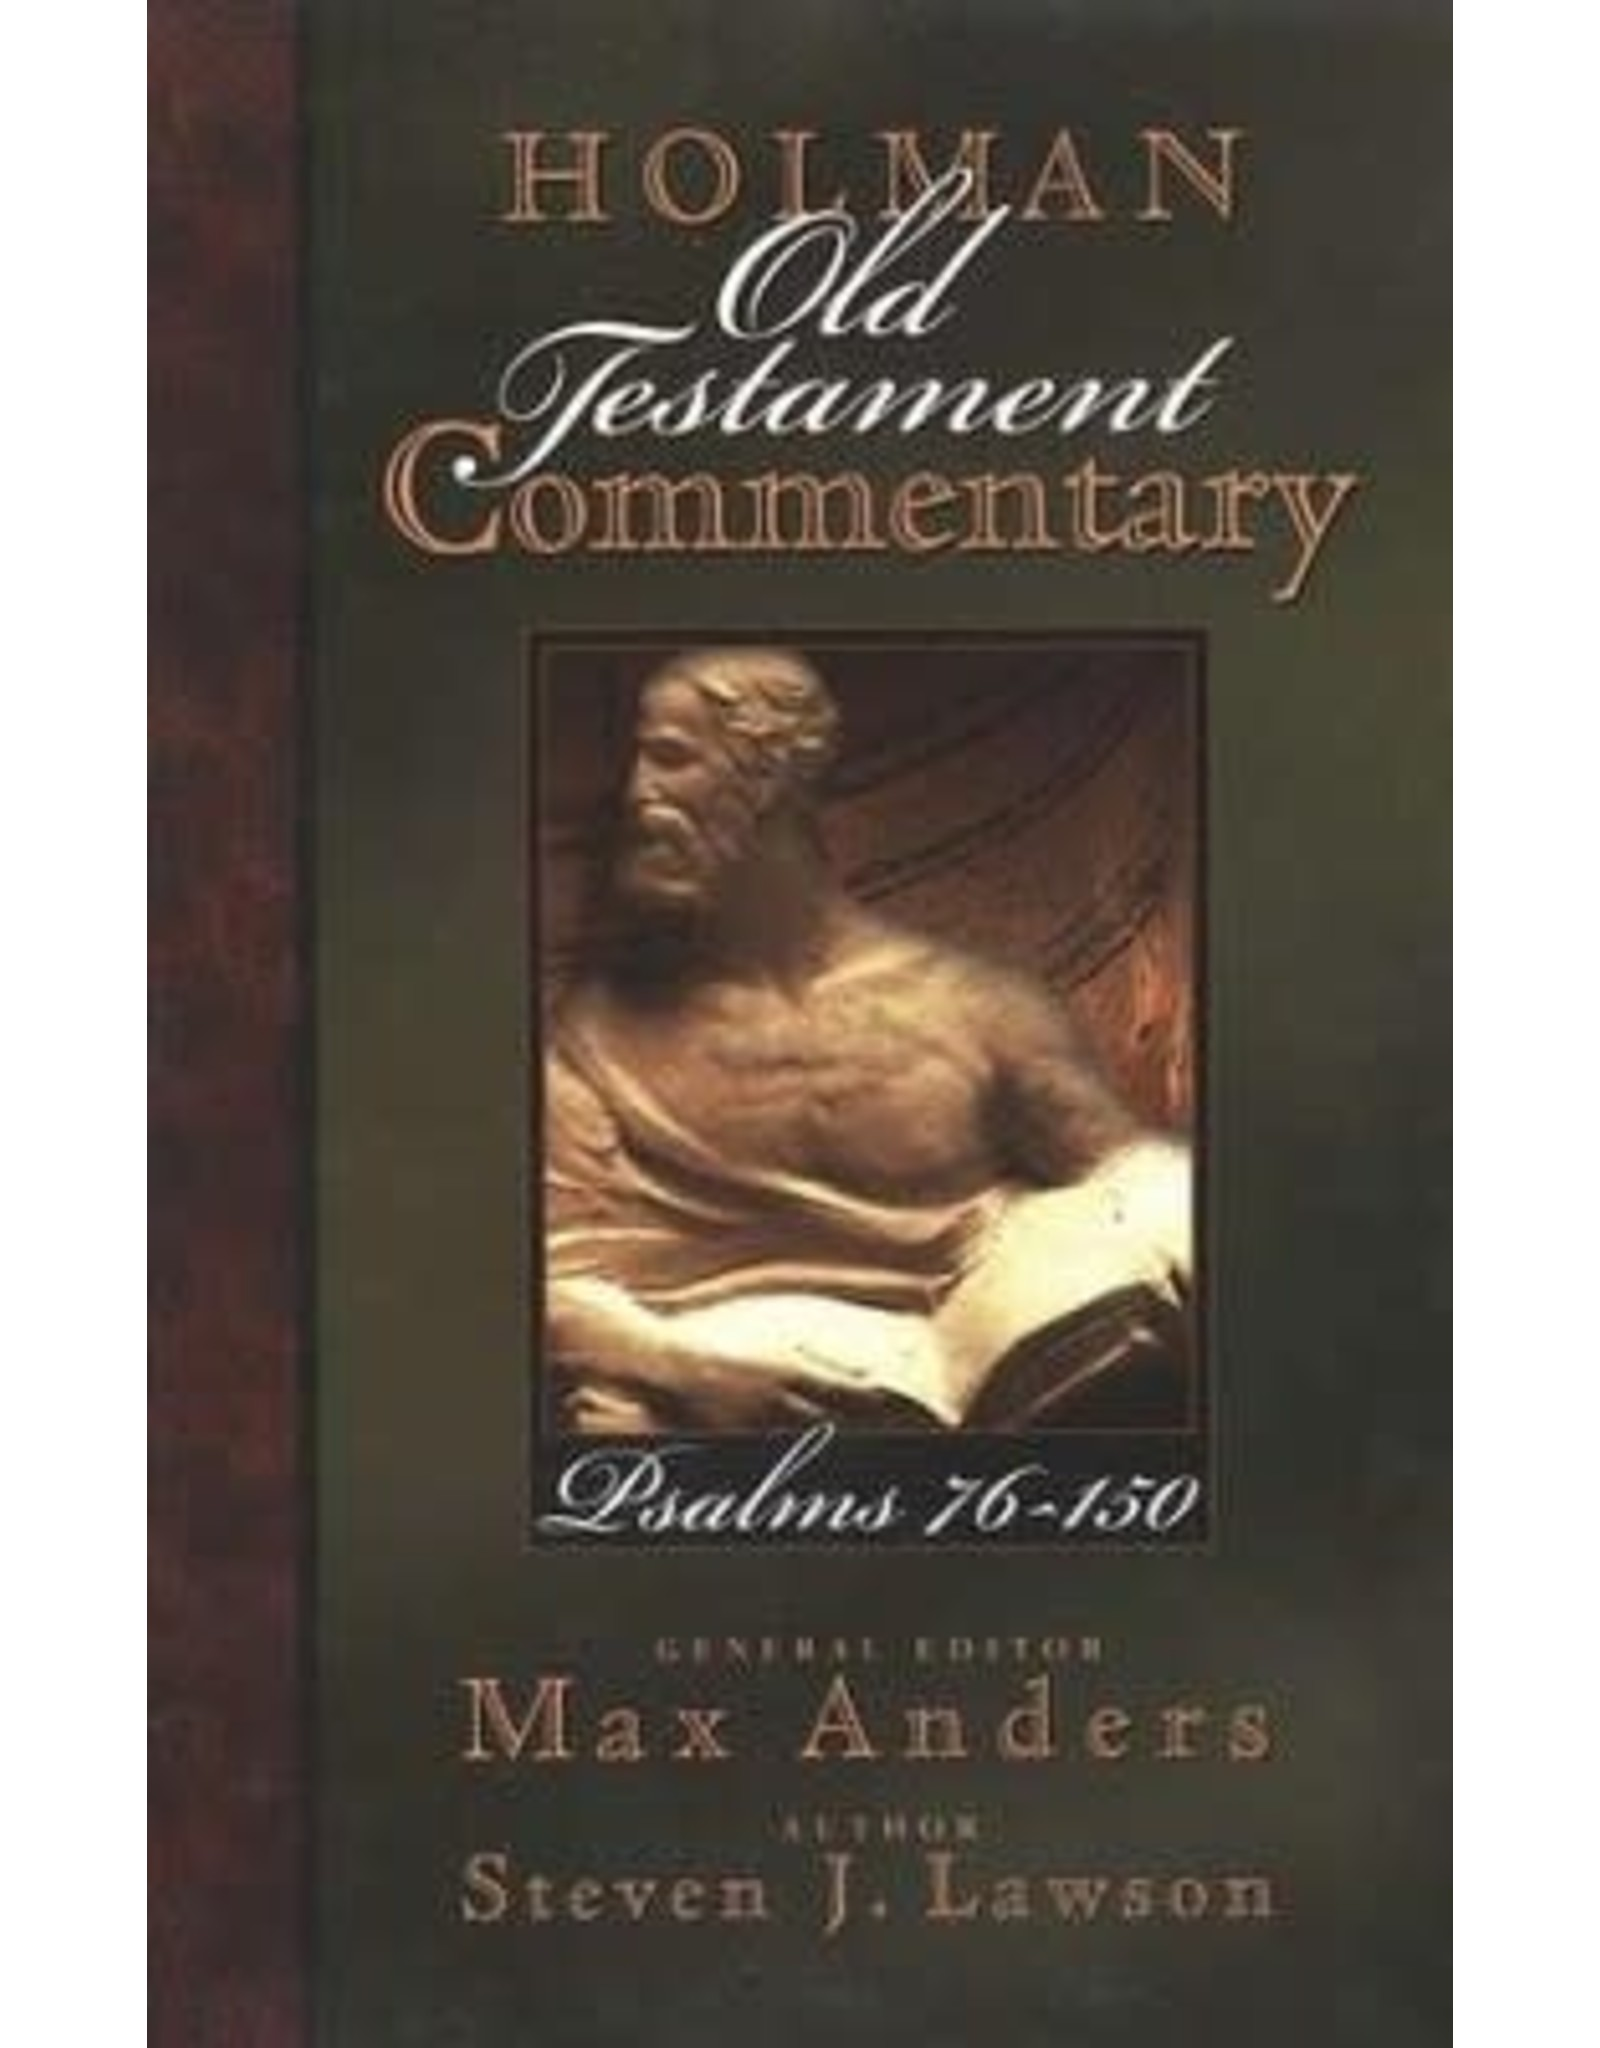 Lawson Holman Old Testament Commentary - Psalms 76-150